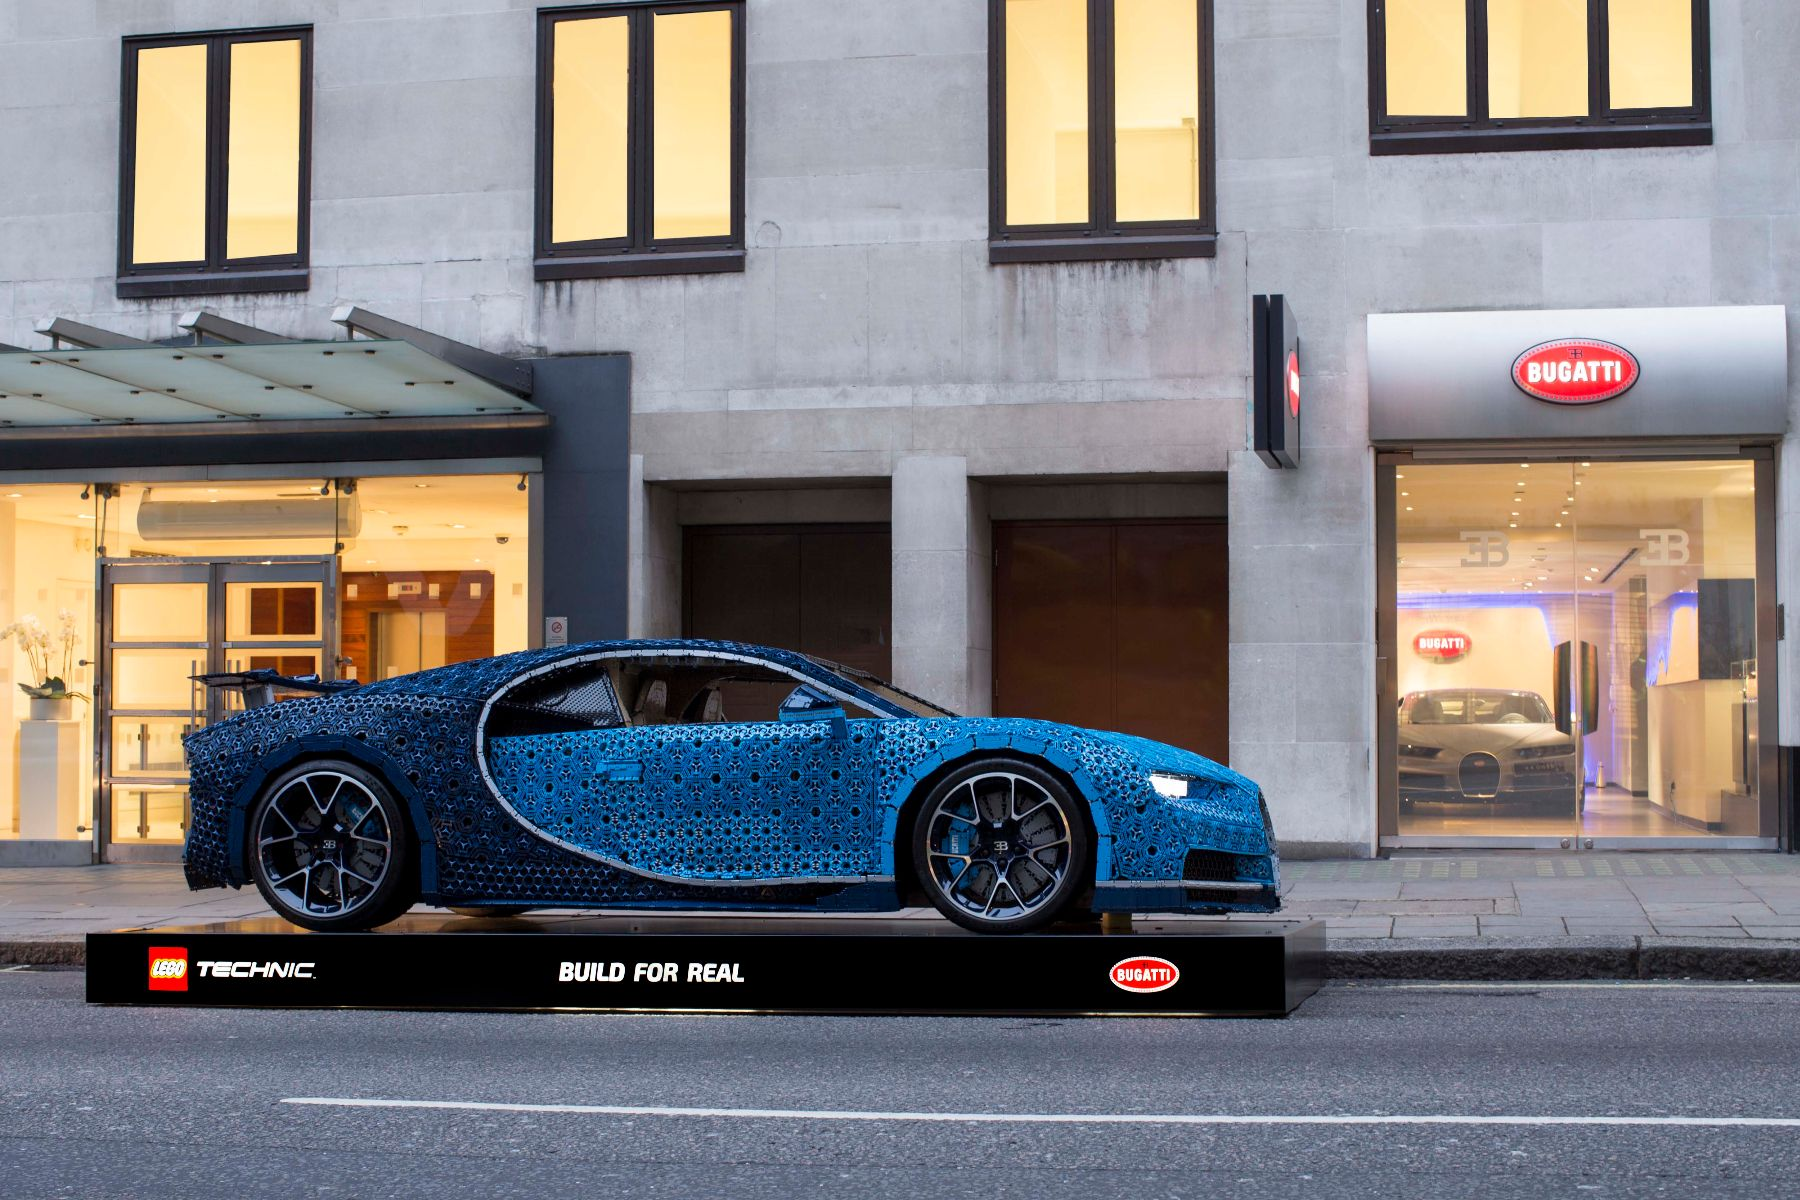 You Could Catch A Life Size Lego Bugatti At London Ping Centre